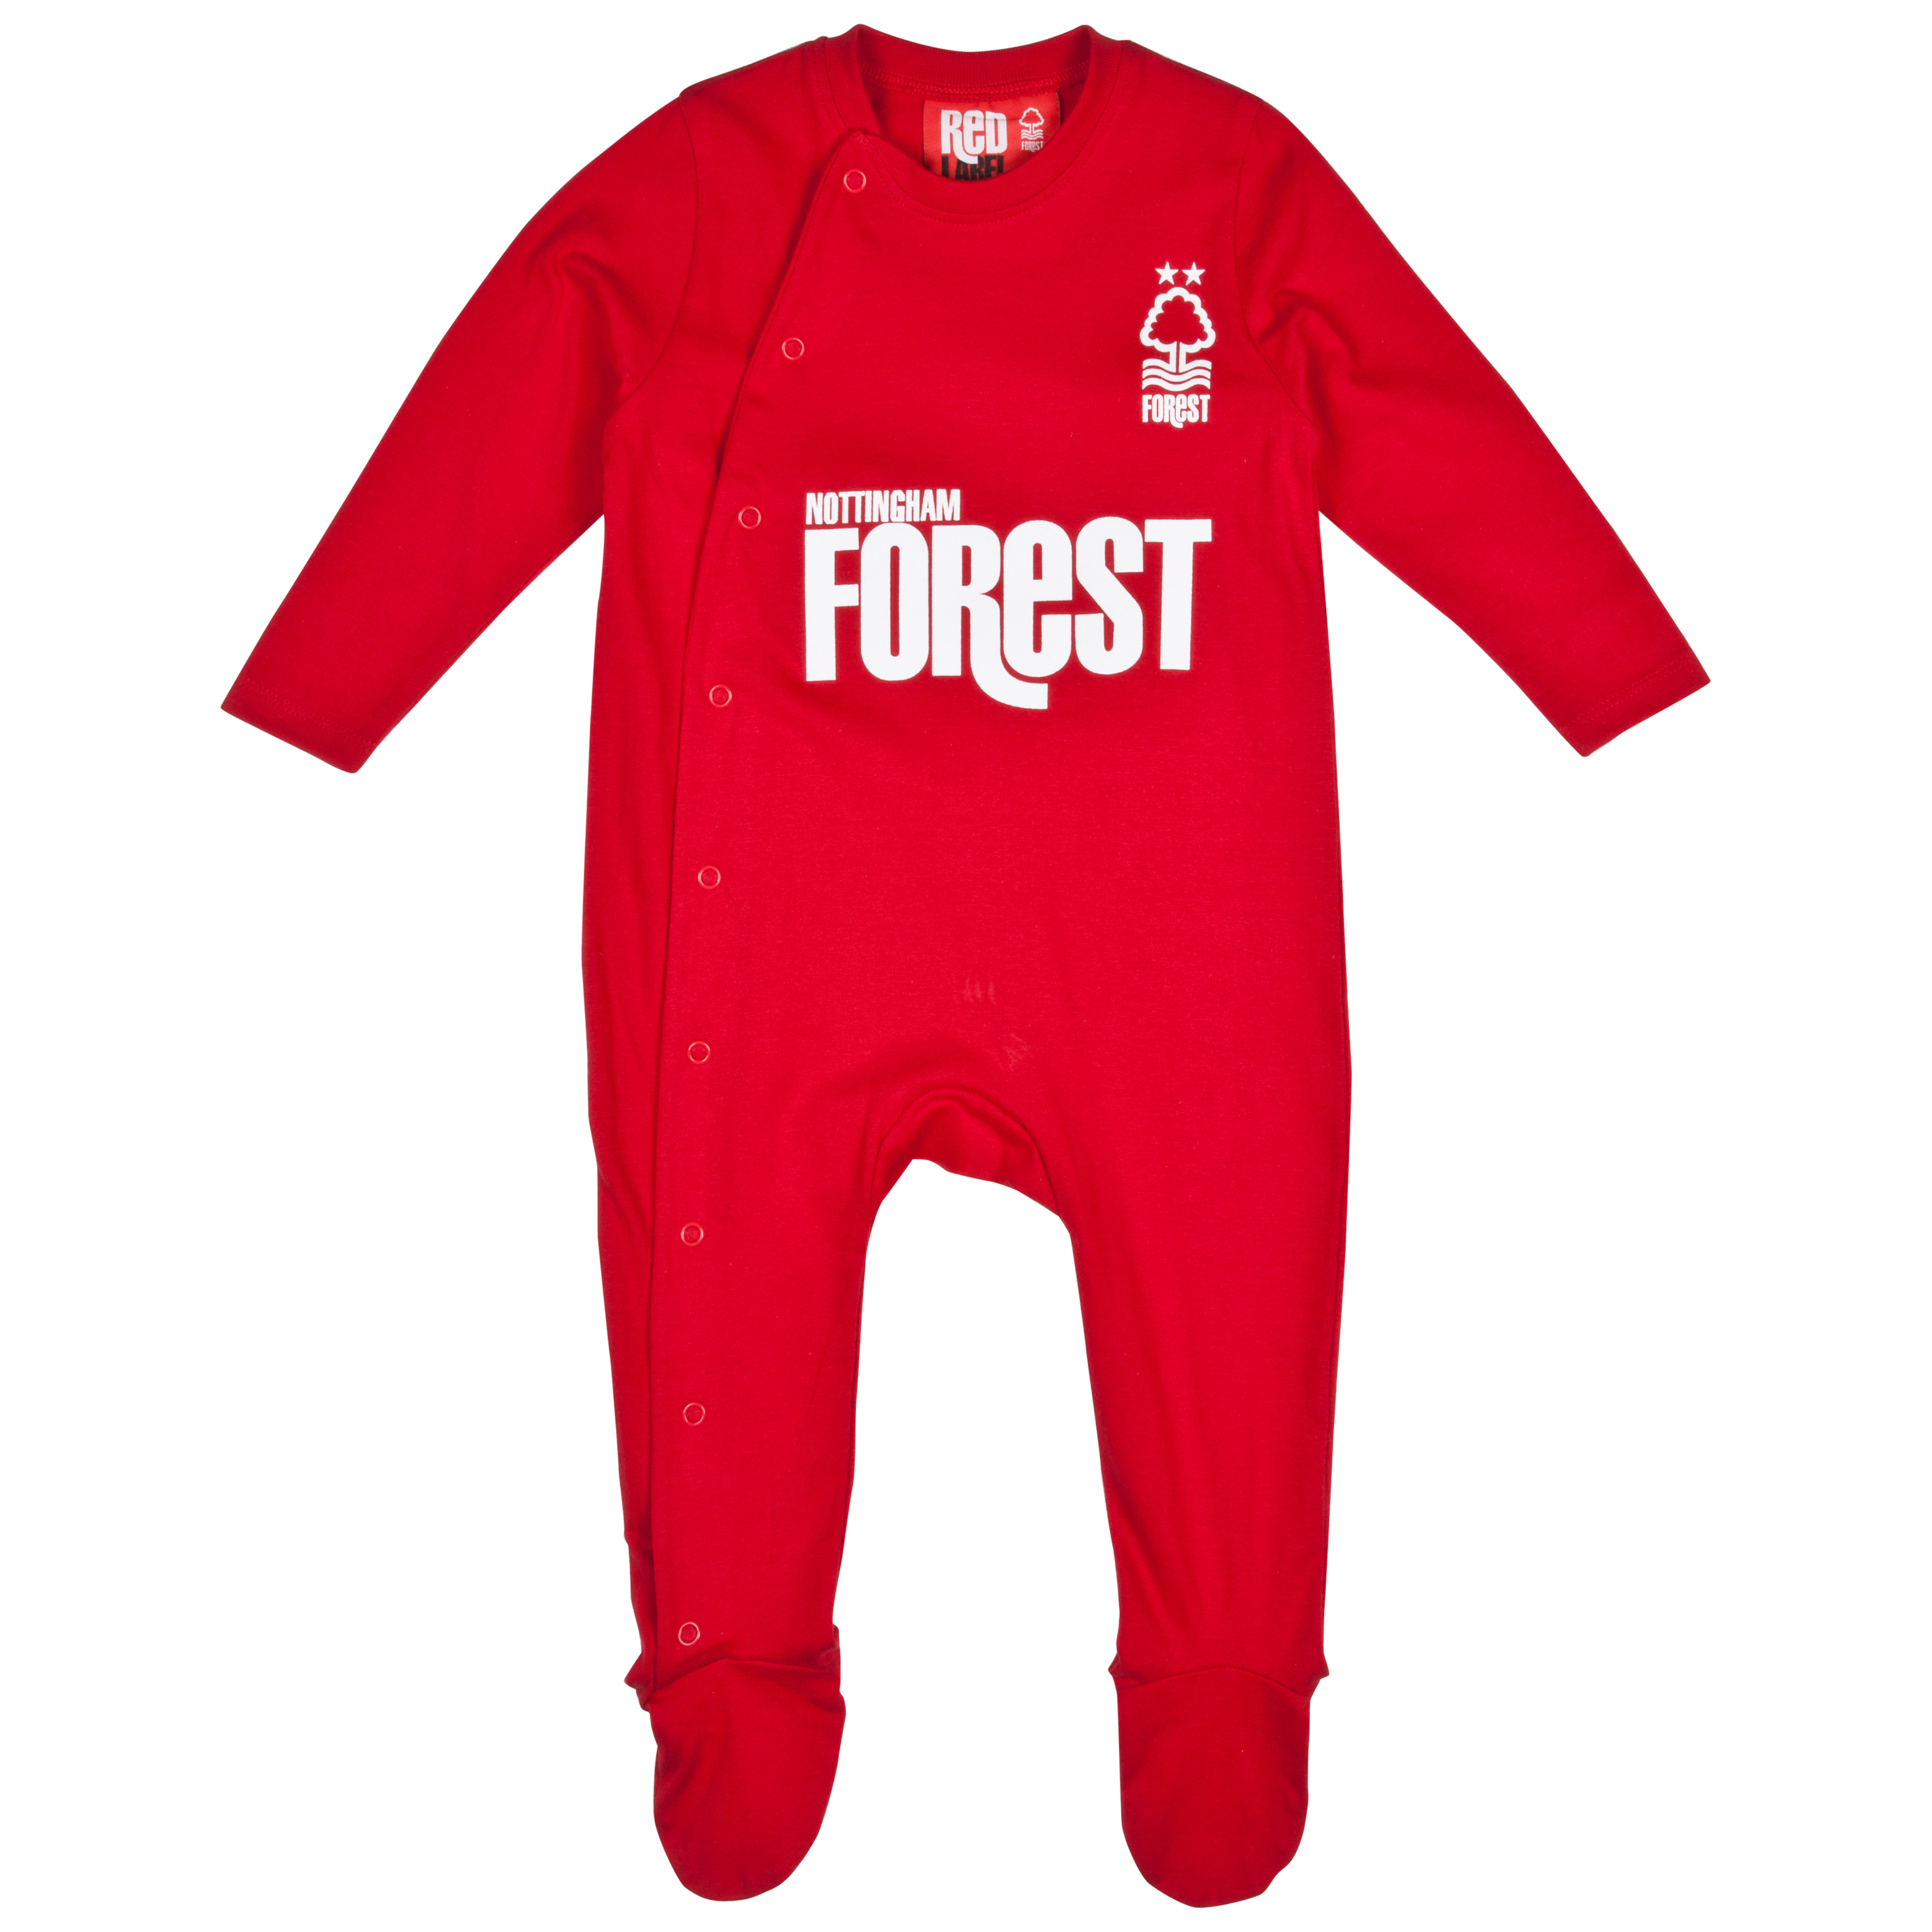 Nottingham Forest 12/13 Kit Sleepsuit - Red - Baby